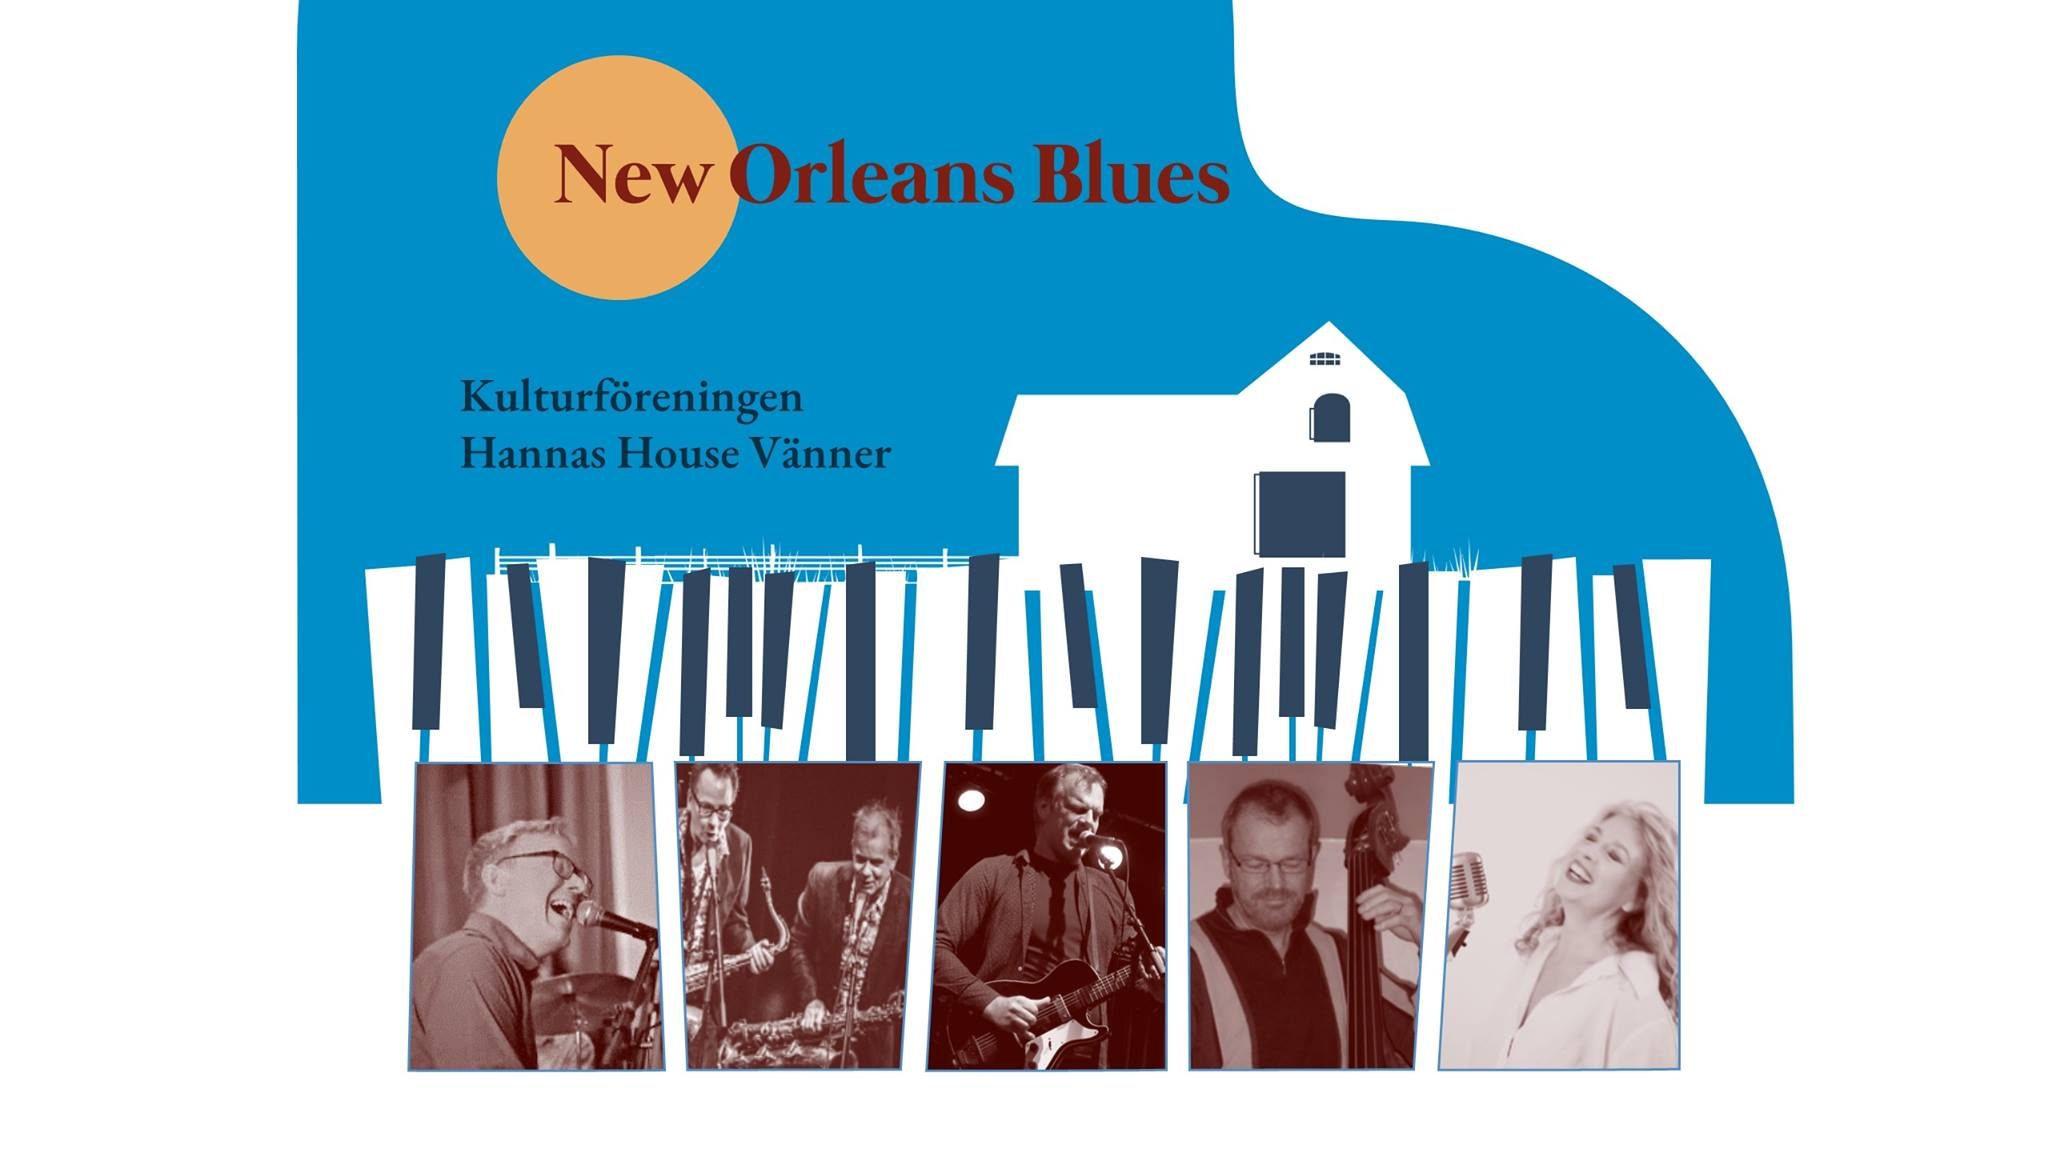 New orleans blues - Österlen is lit.